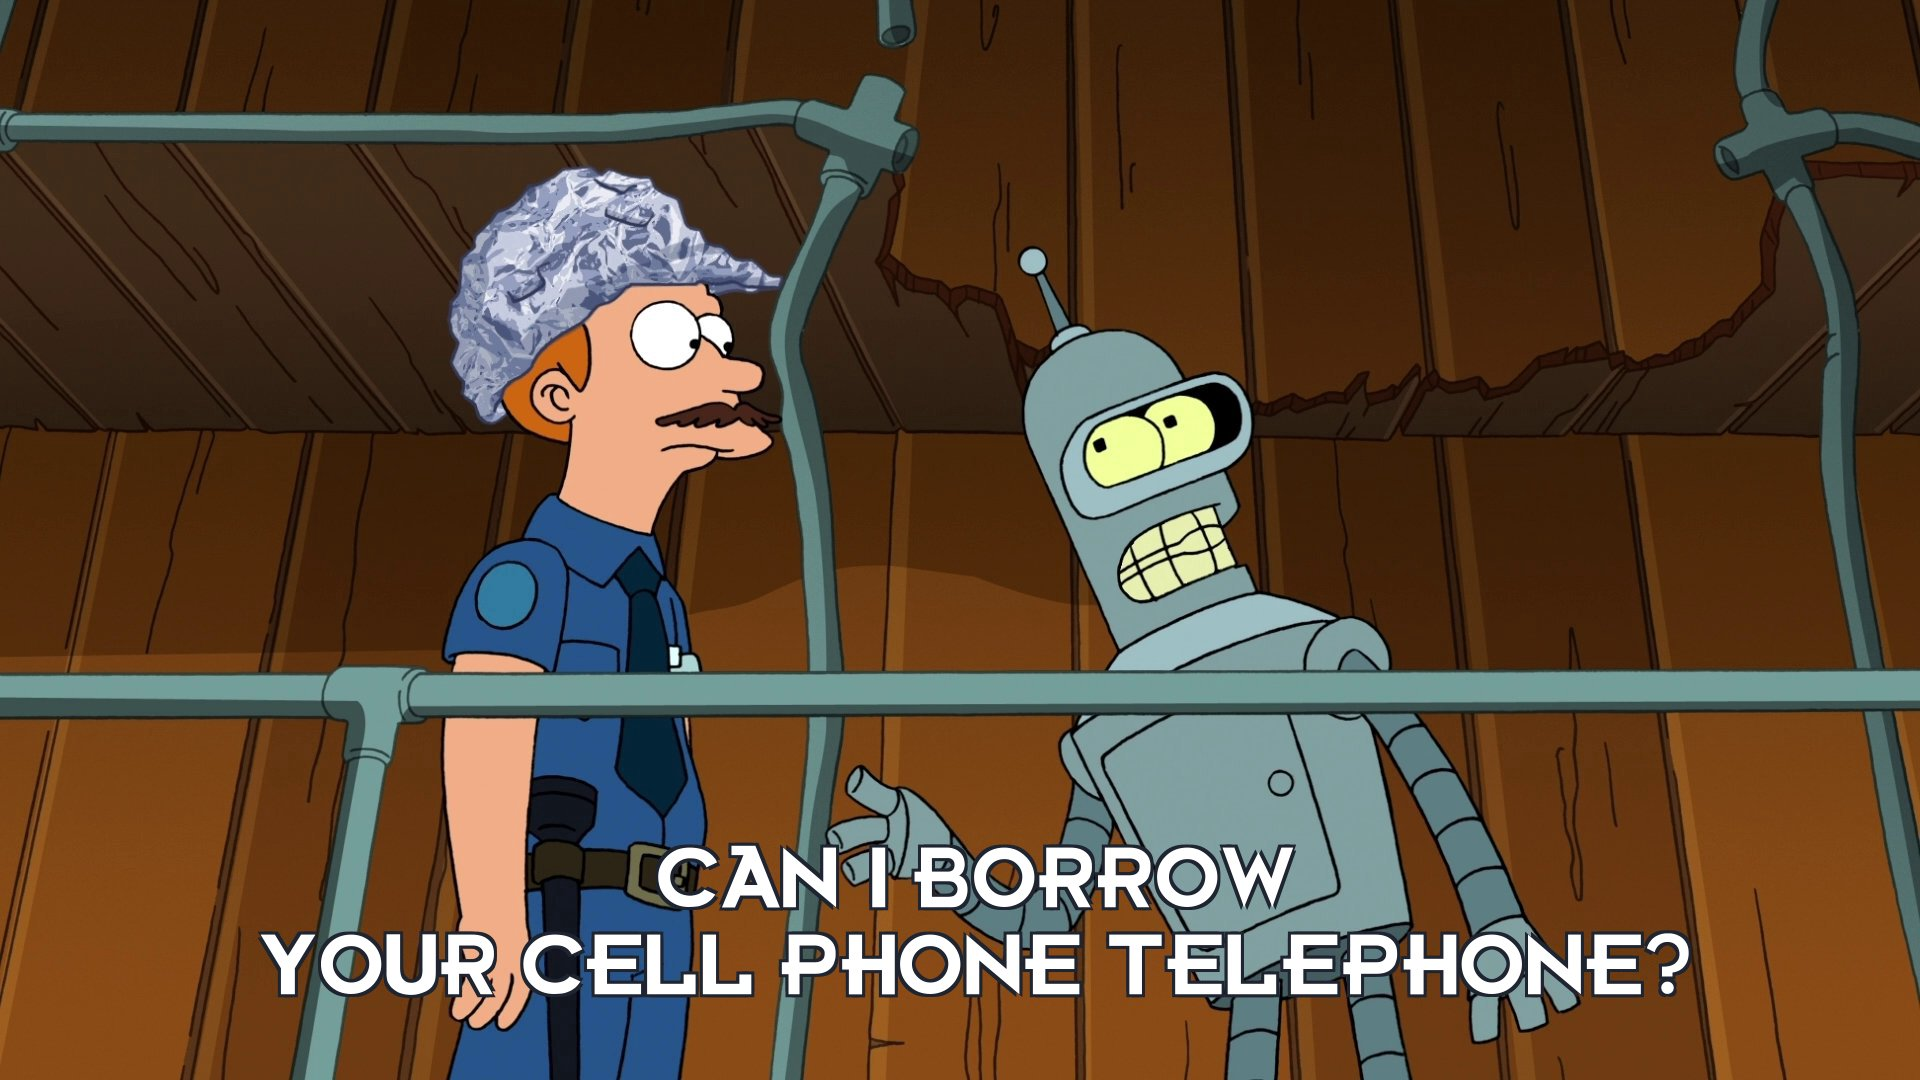 Bender Bending Rodriguez: Can I borrow your cell phone telephone?